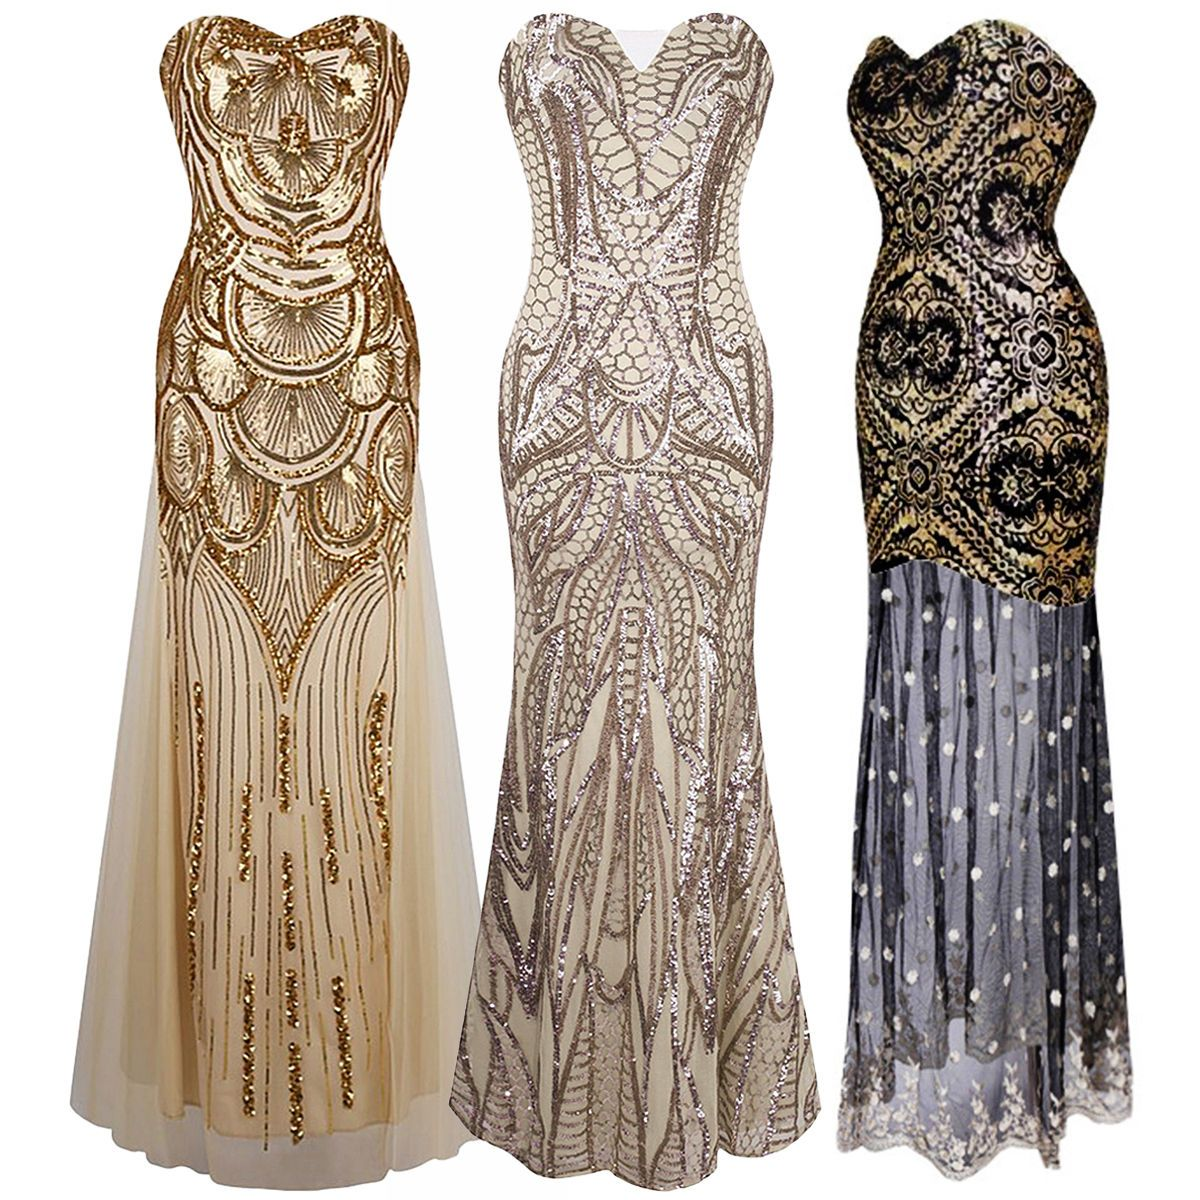 b159ba16aecac 1920S Flapper Maxi Dress Gatsby Charleston Beaded Sequin Fringed Party  Costume